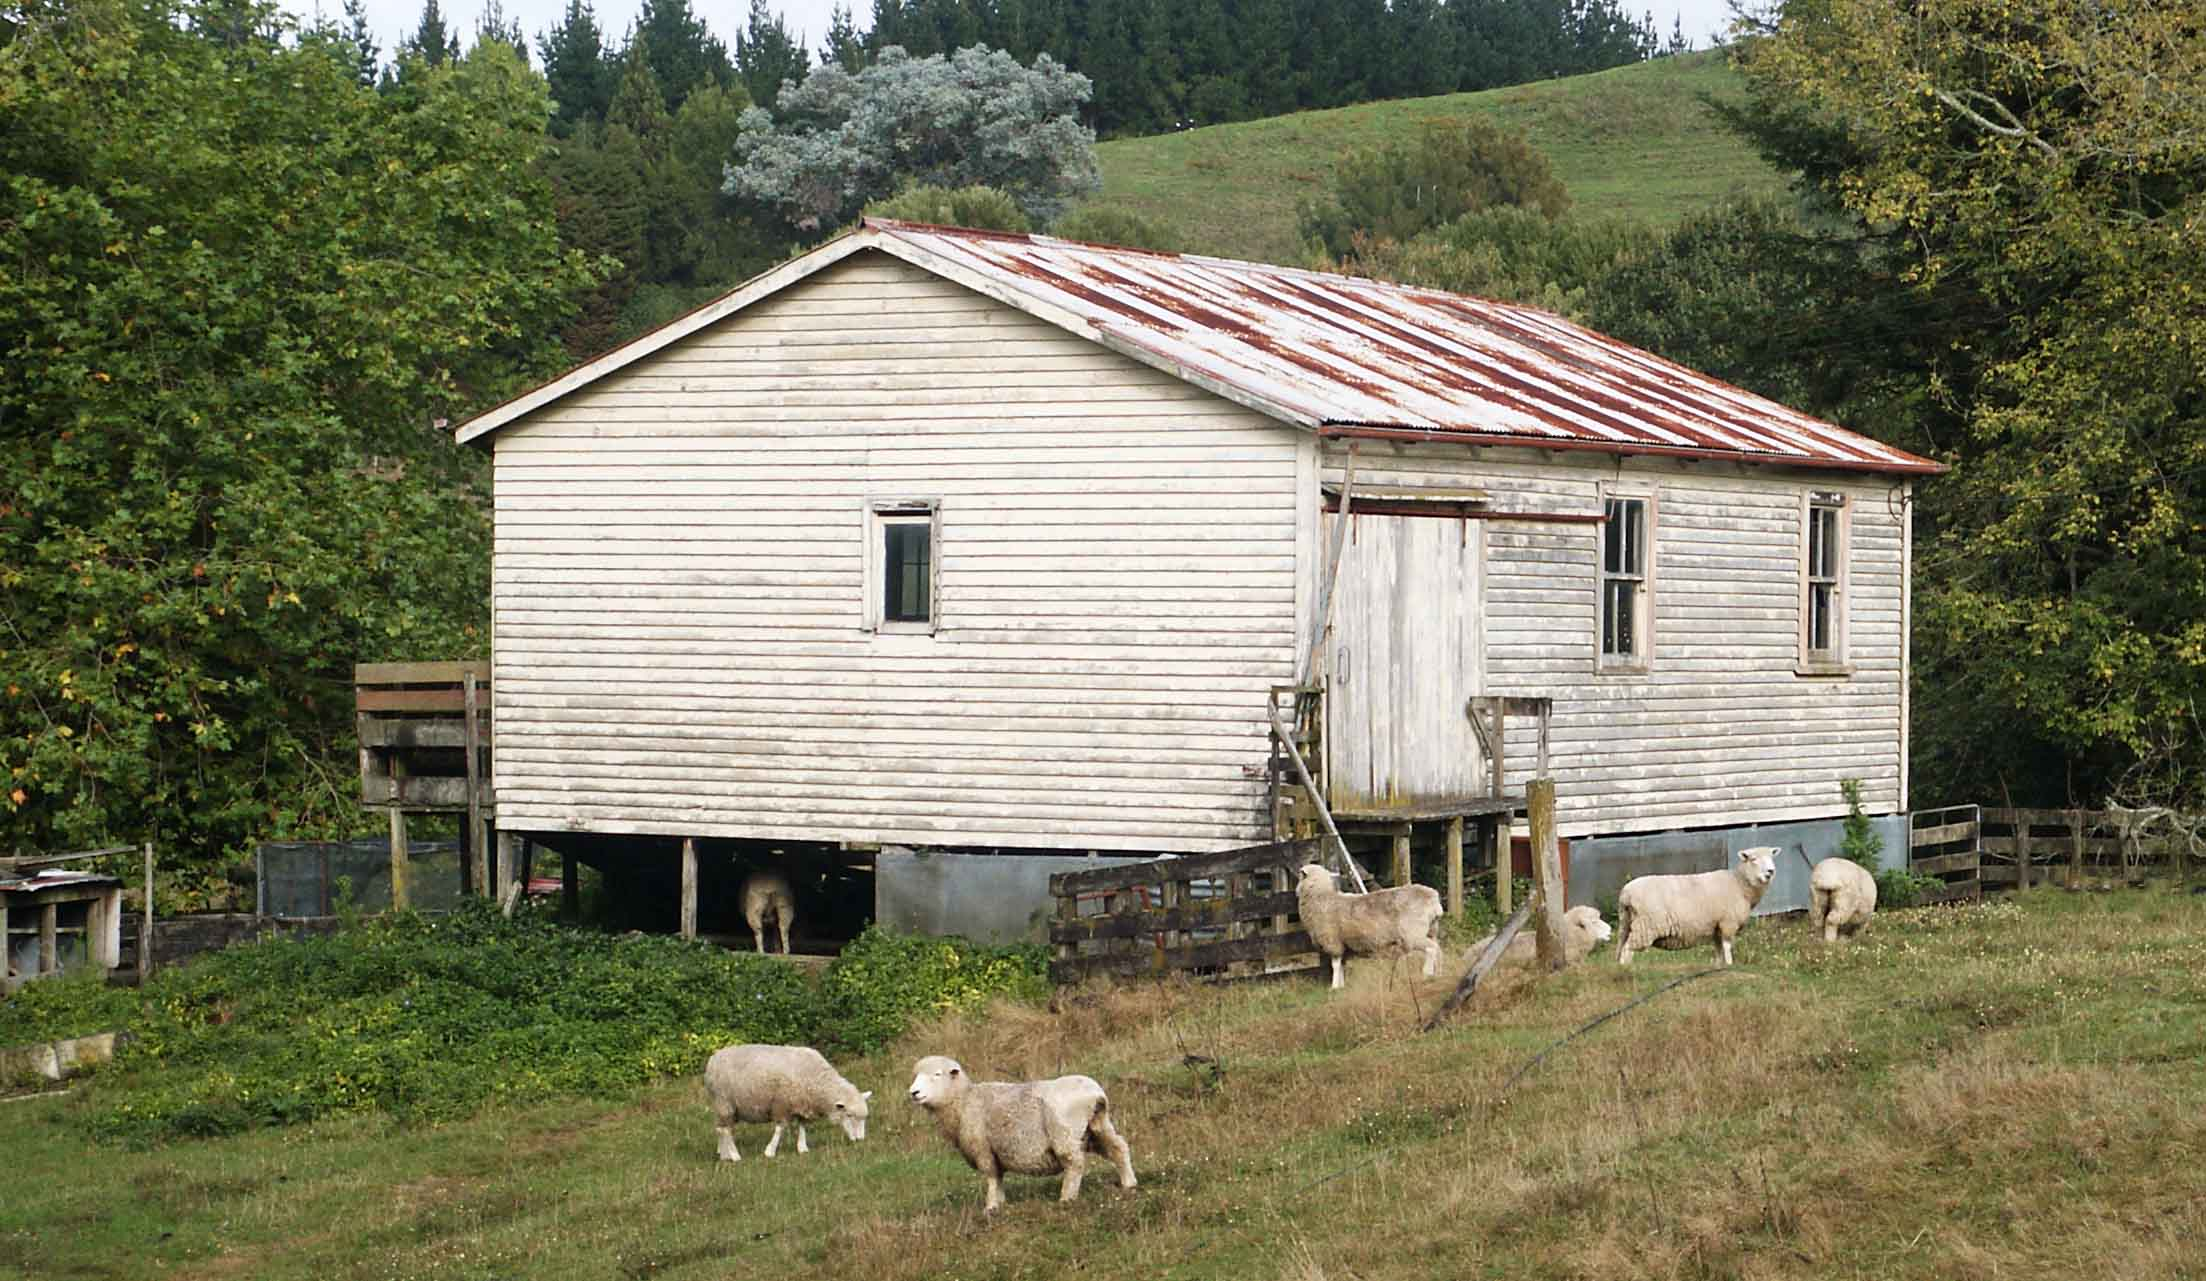 This is a classic New Zealand image, but things are changing. The old woodshed near to our house was demolished shortly after this picture was taken.